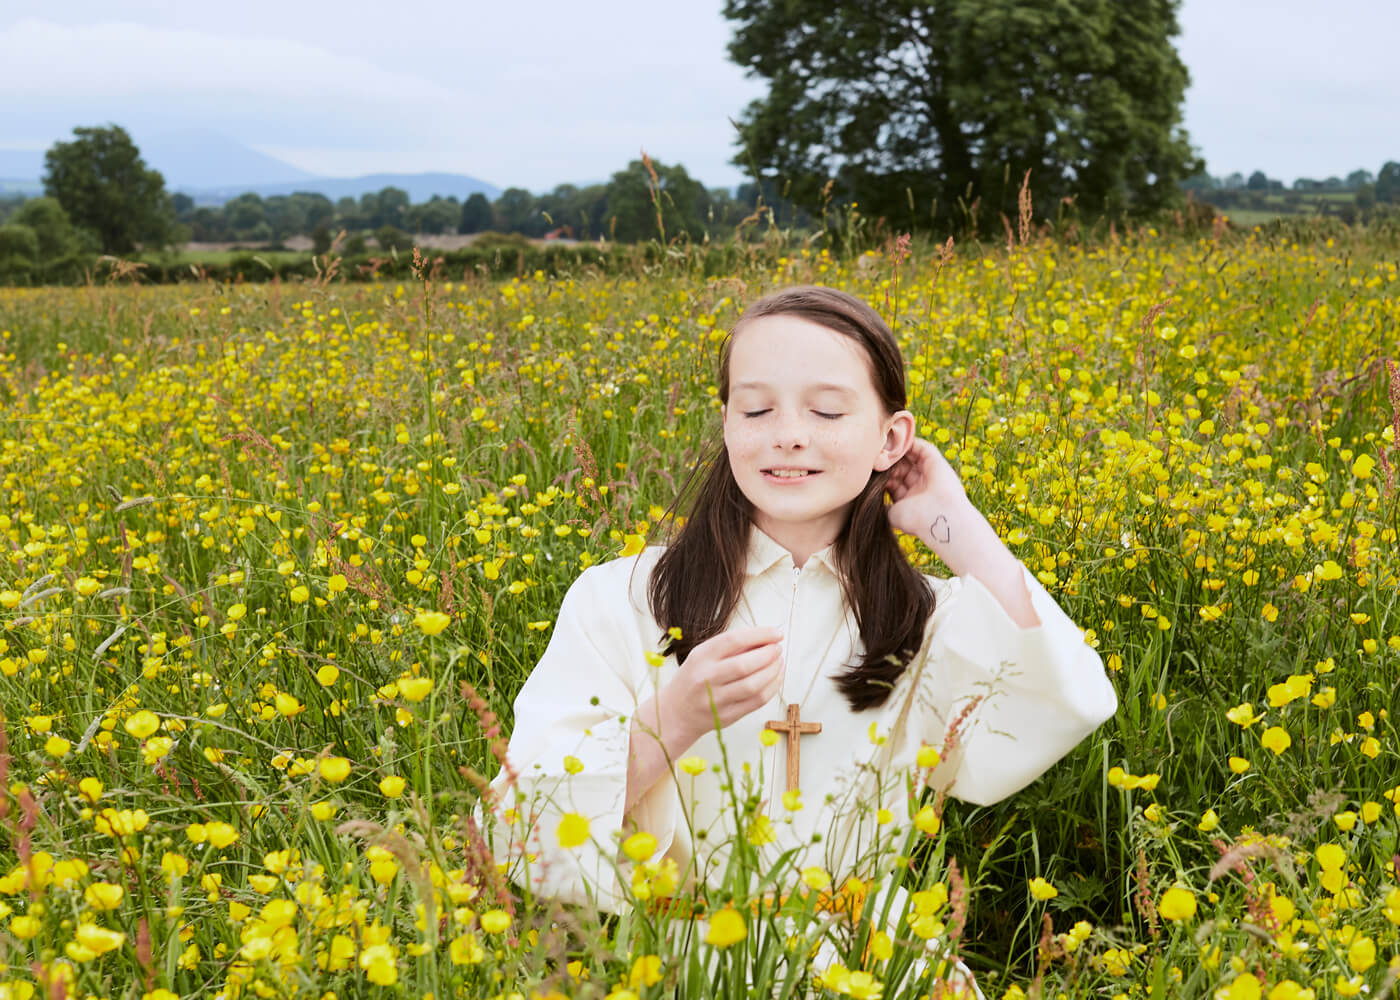 Katie, Wicklow Mountains.  Eleven-year-old Katie is an altar server, traditionally a route to the priesthood for boys. The Vatican said in 2010 it regards the full and equal participation of women in the church 'a grave sin'.